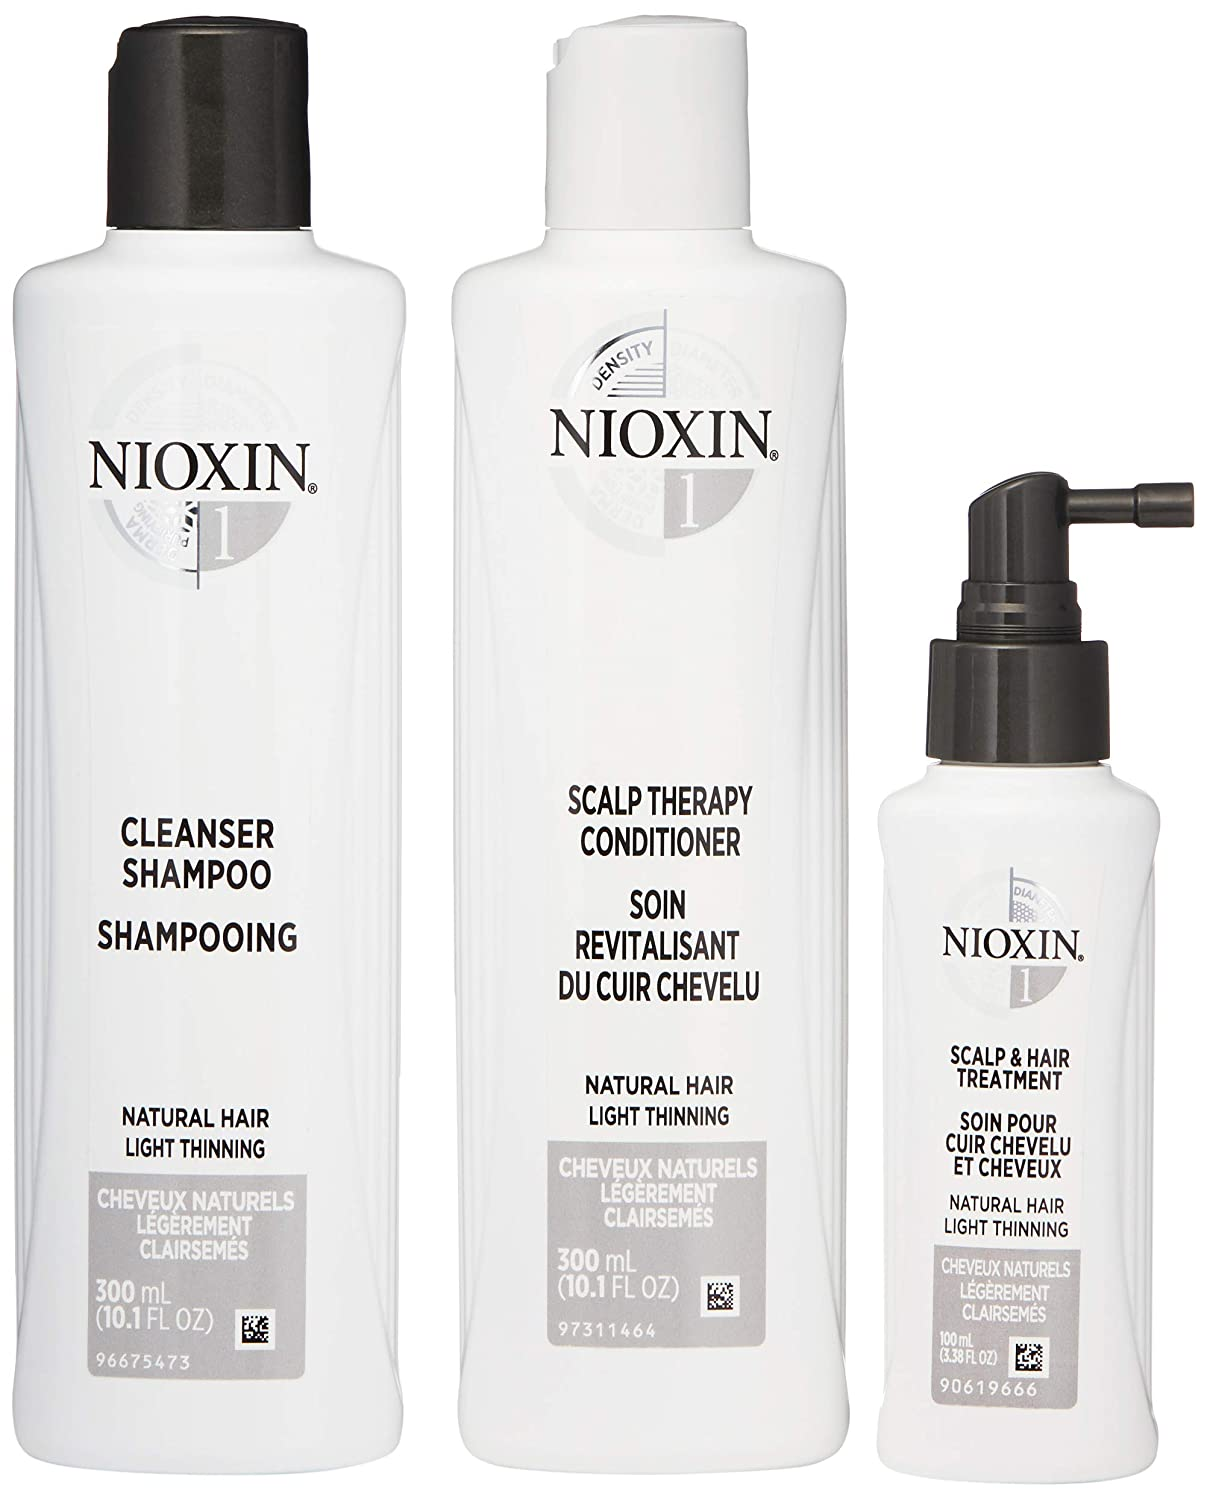 Does nioxin shampoo make your hair grow faster